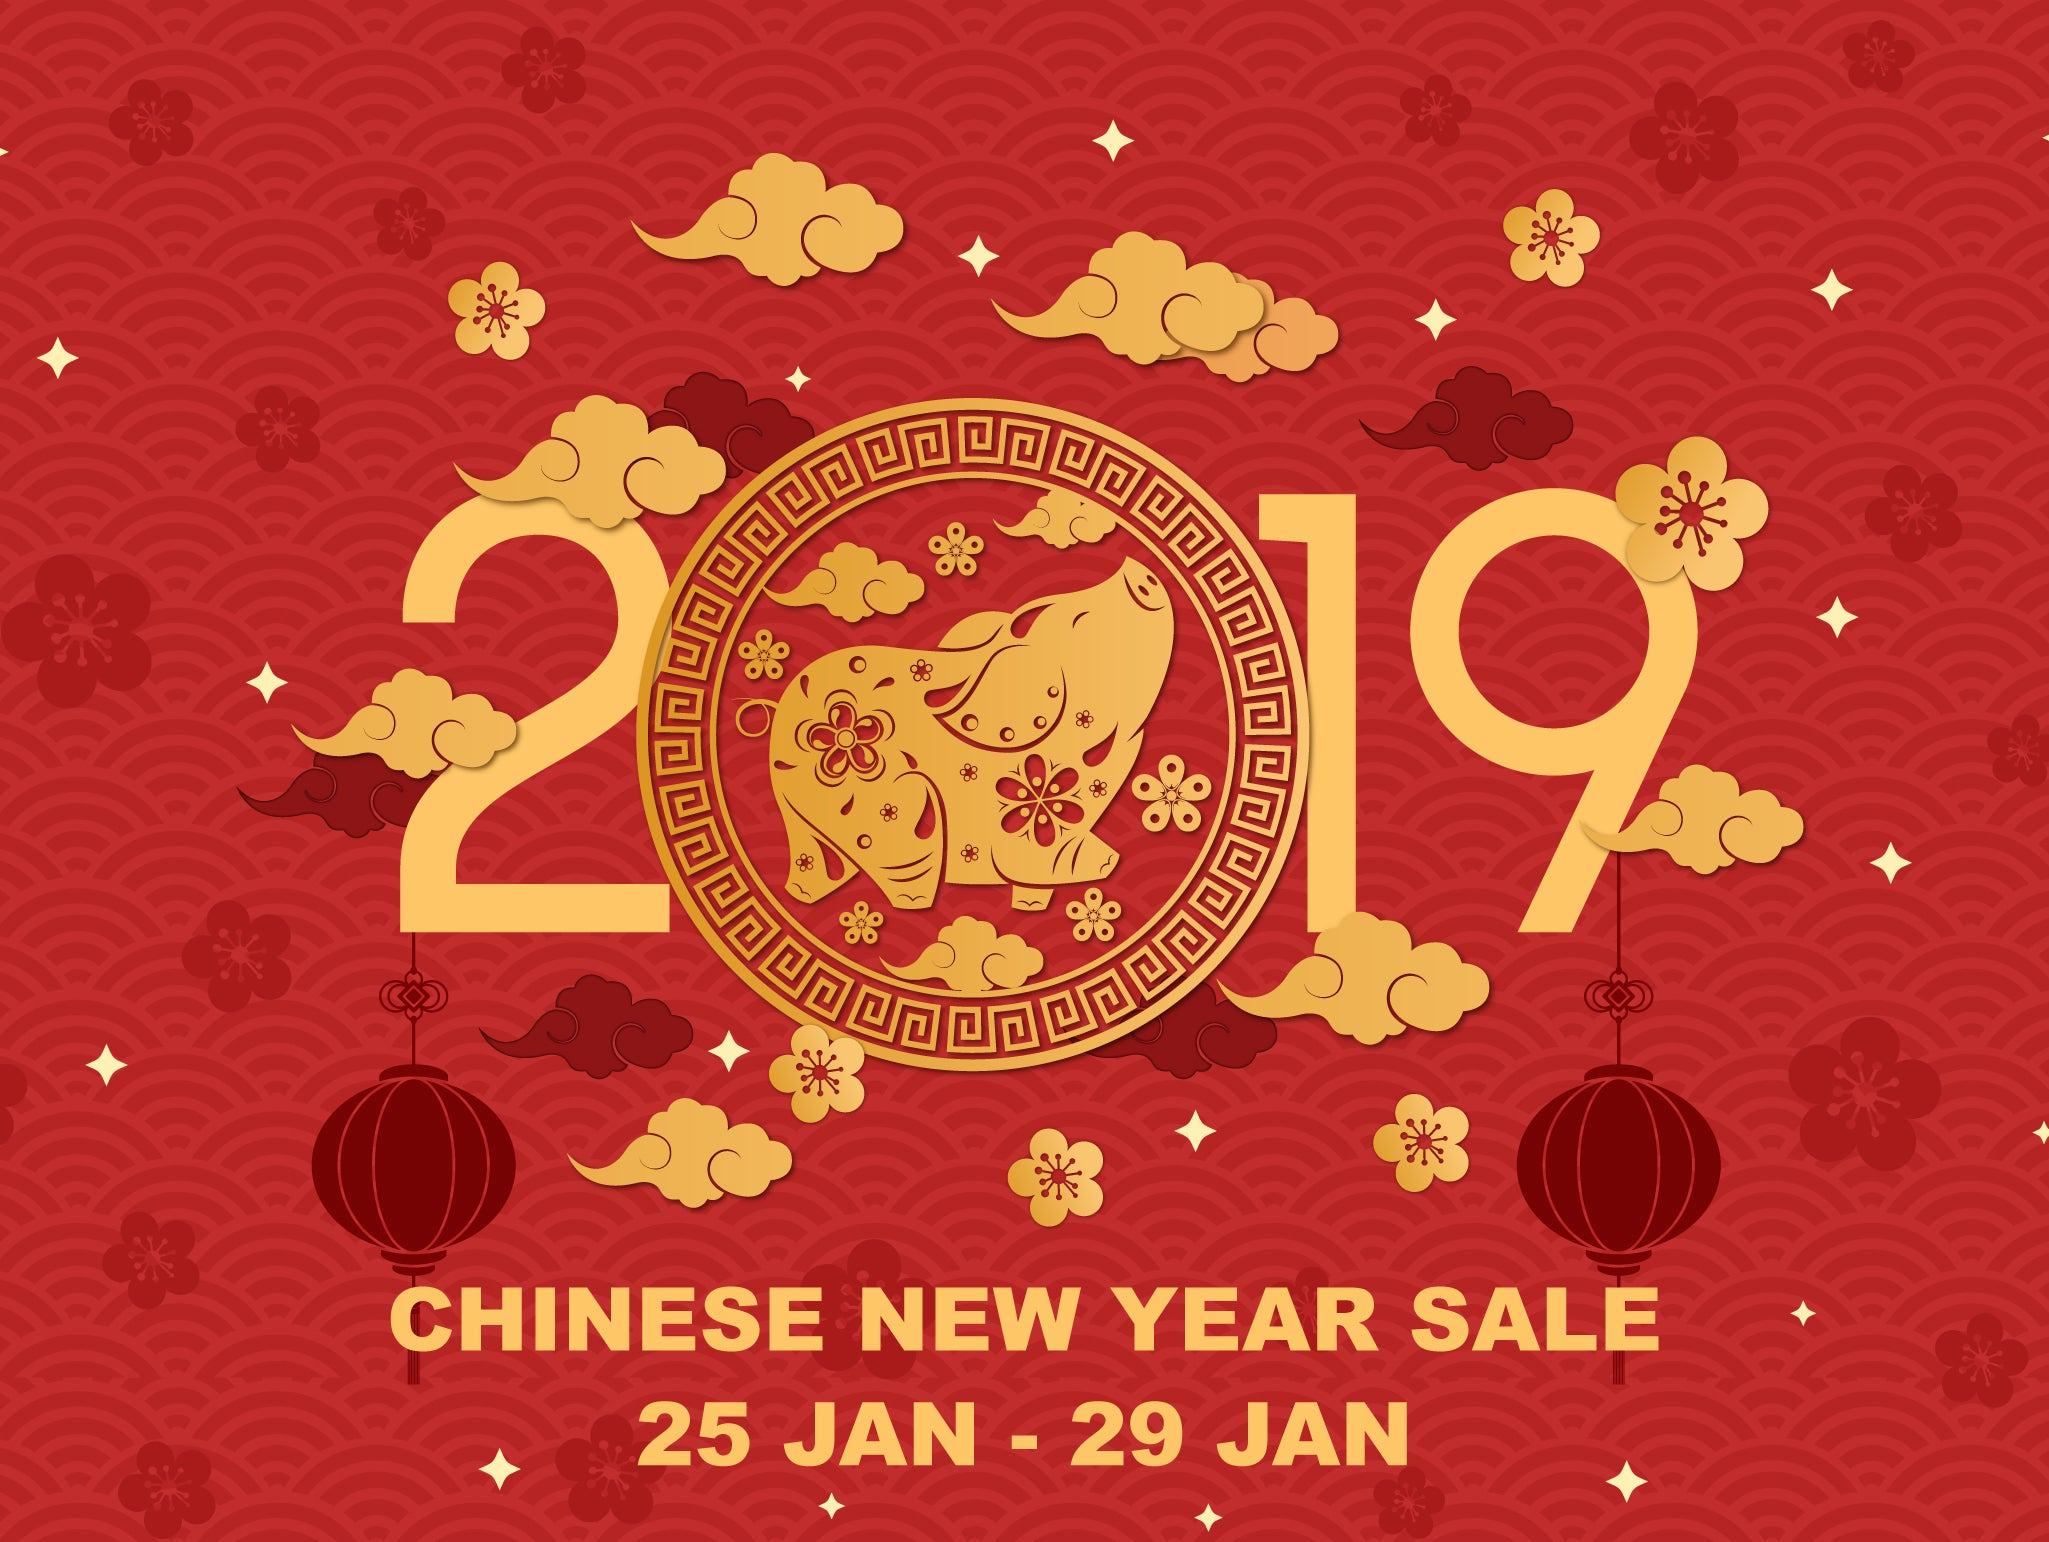 Waseyo 2019 Chinese New Year Sale!